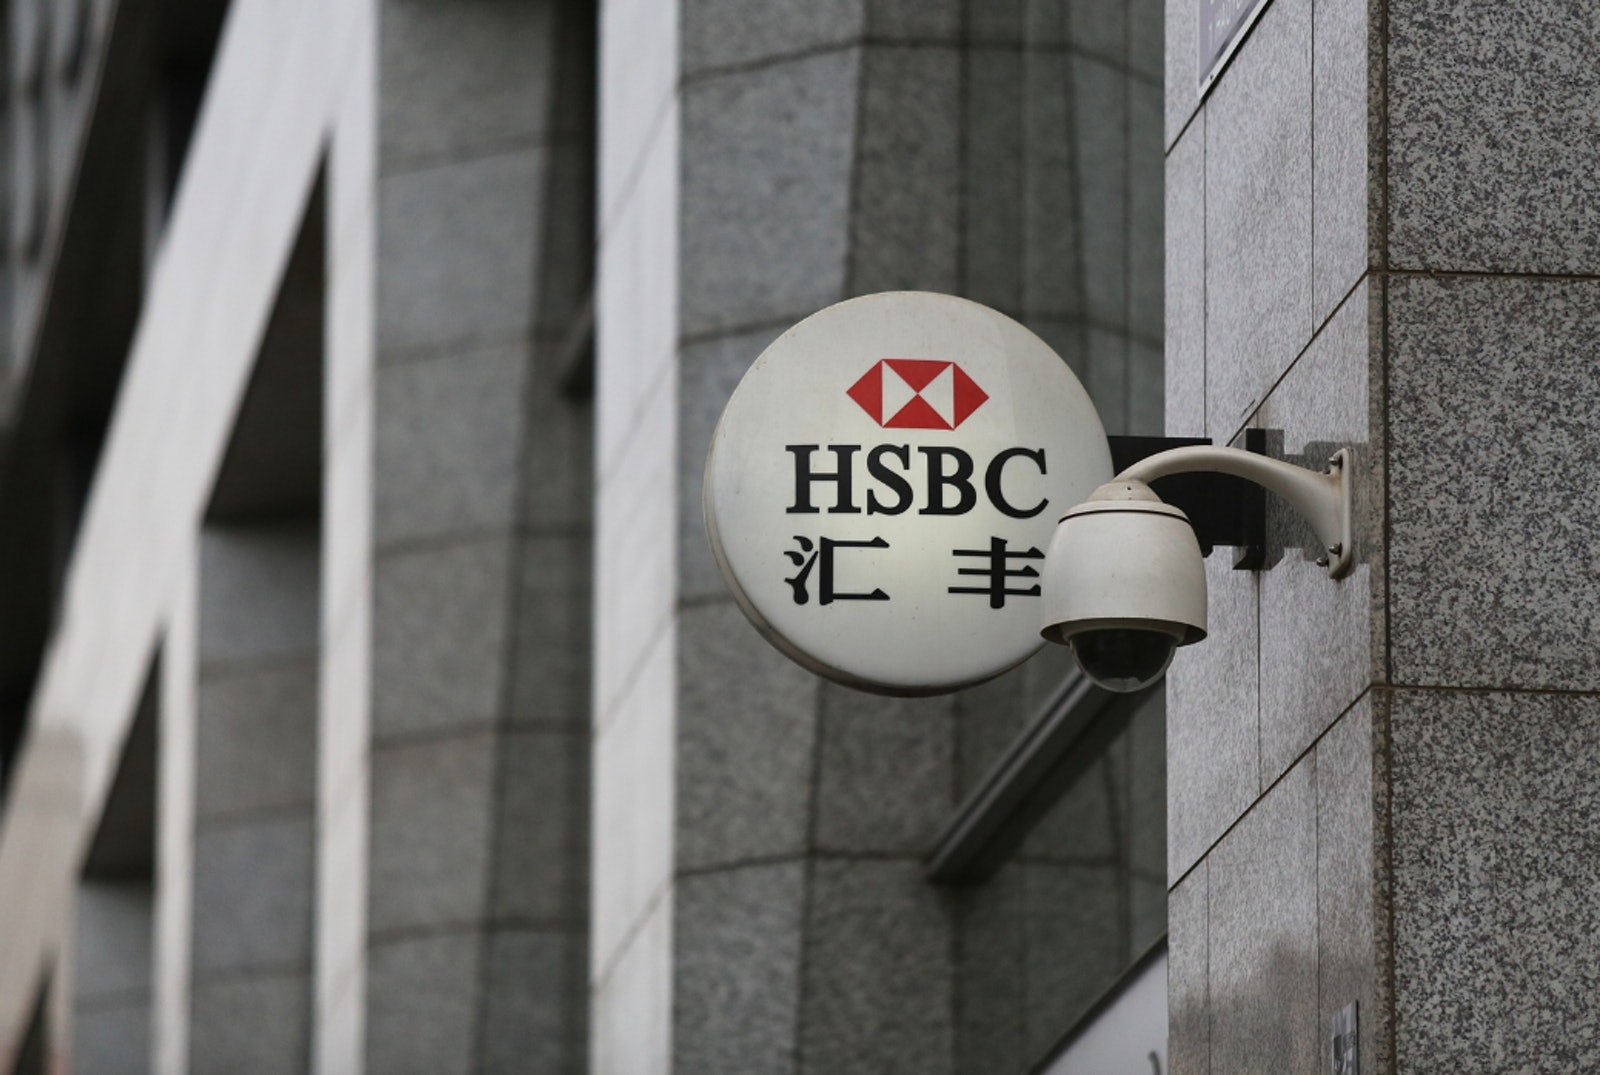 HSBC plans to lay off nearly 100 stock sales staff! Earlier news said the bank may lay off 10,000 employees